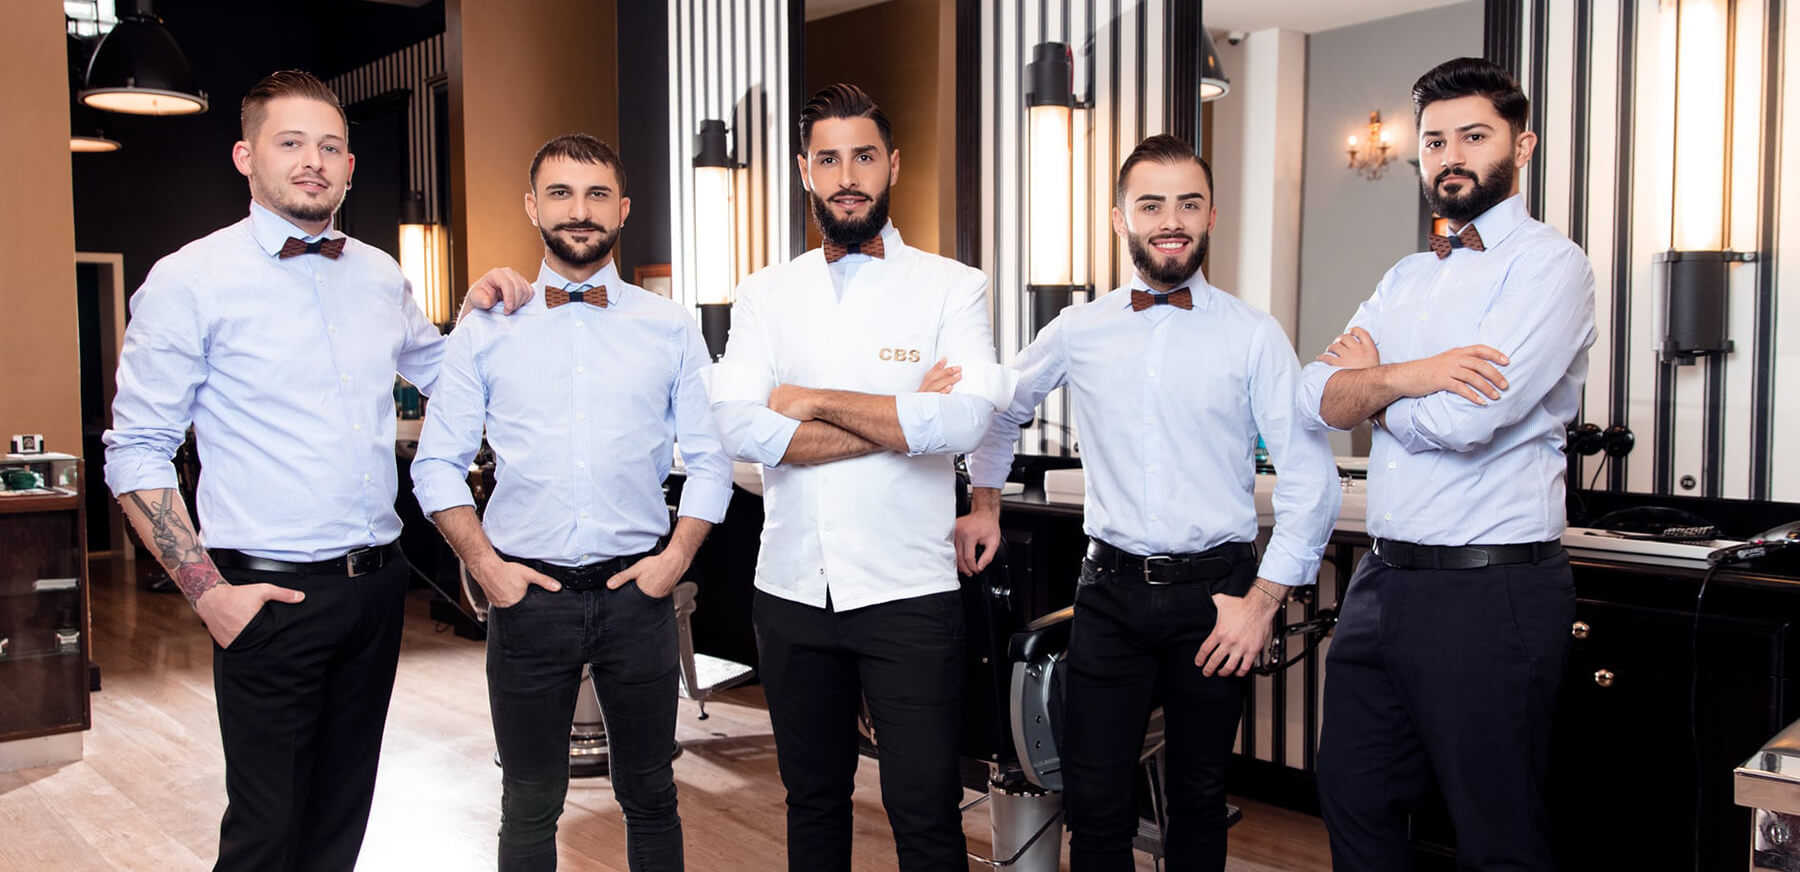 Ahmed Al Musawi Herrenfriseur Barber Captains Barber Shop Düsseldorf Team